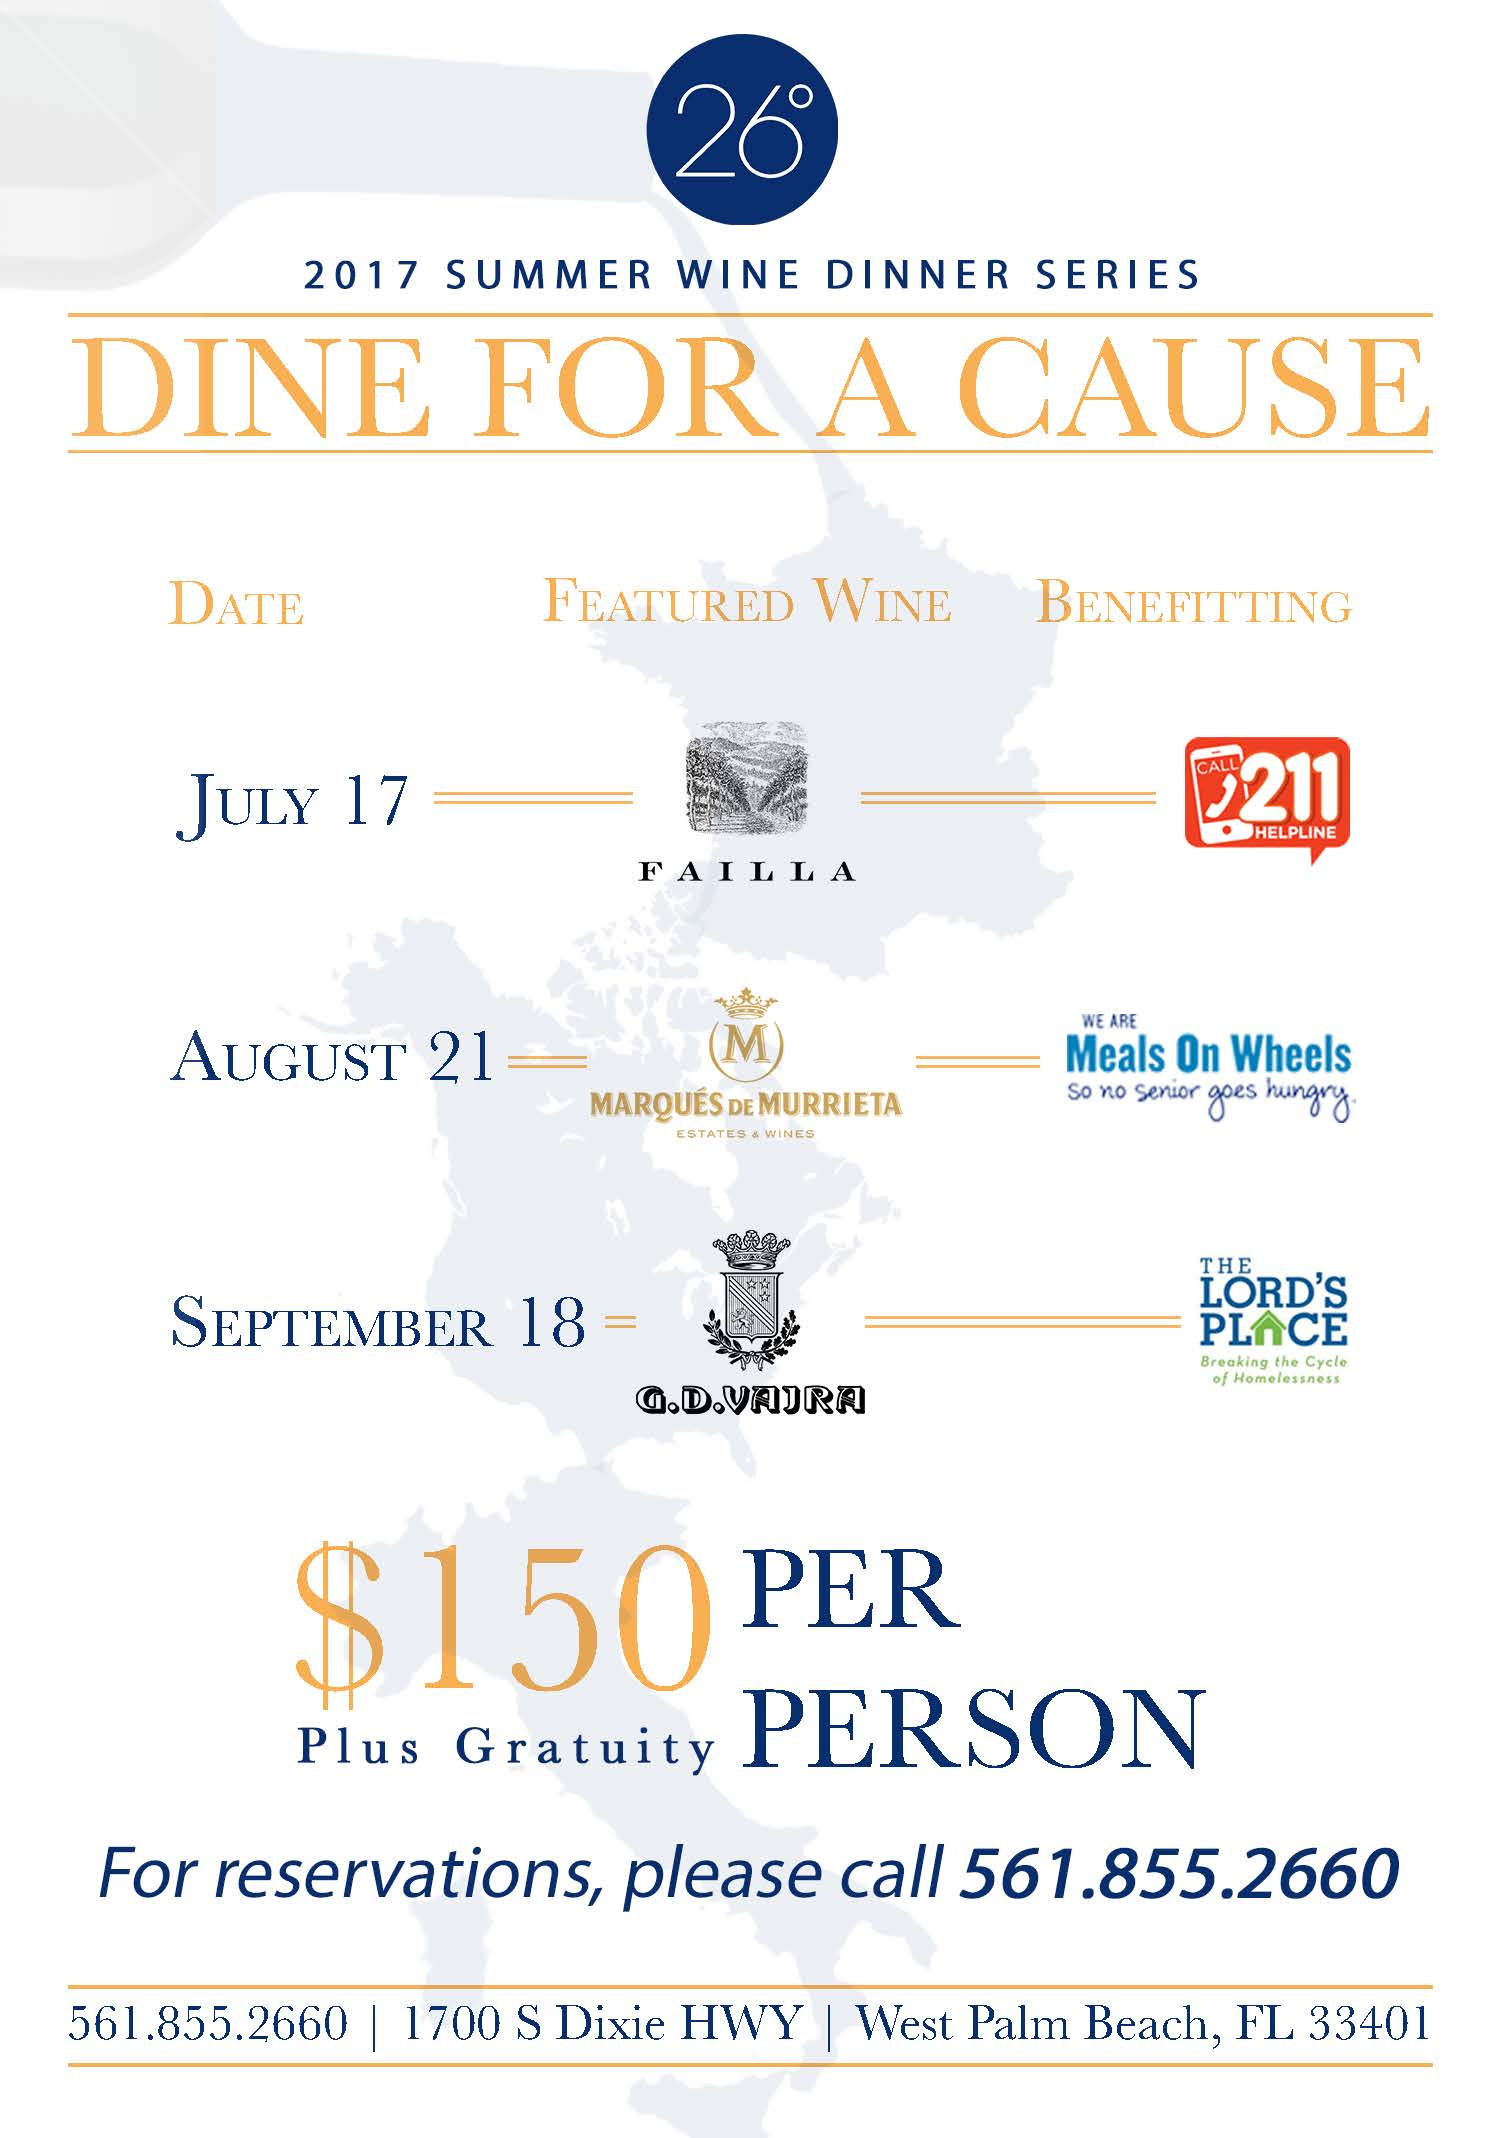 join us July 17th! click image to visit table 26's website